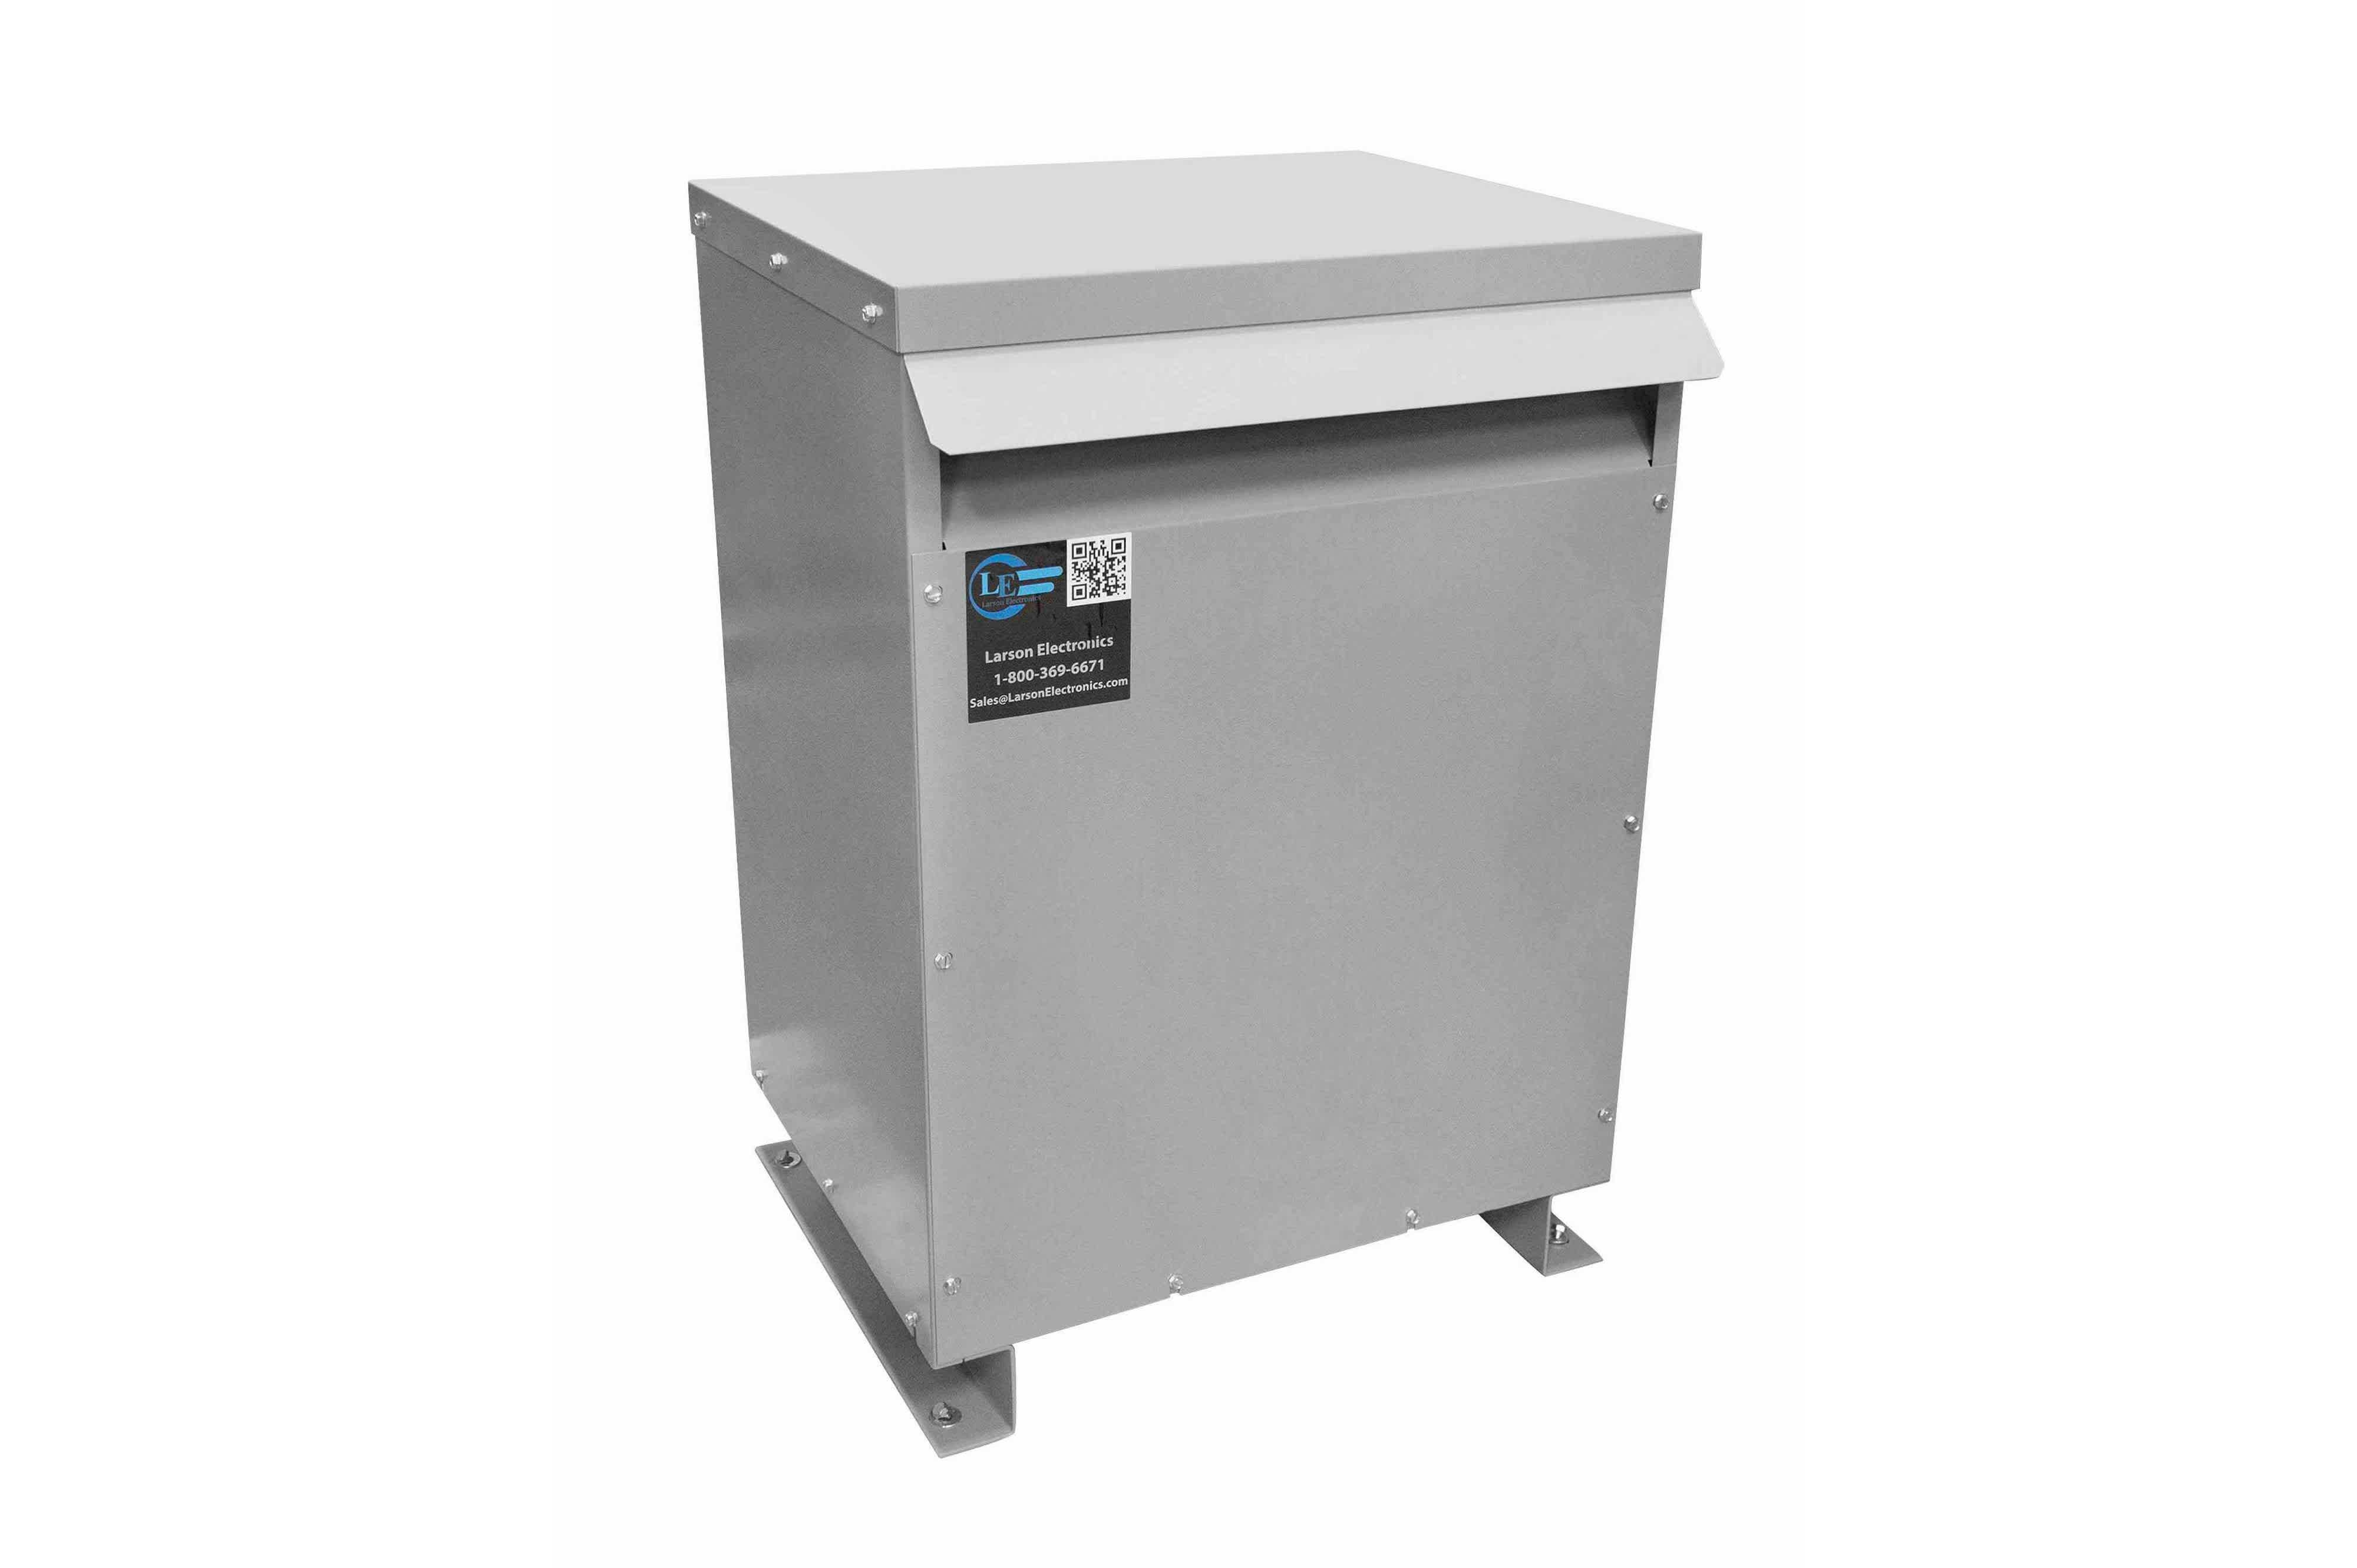 12 kVA 3PH Isolation Transformer, 400V Wye Primary, 600Y/347 Wye-N Secondary, N3R, Ventilated, 60 Hz